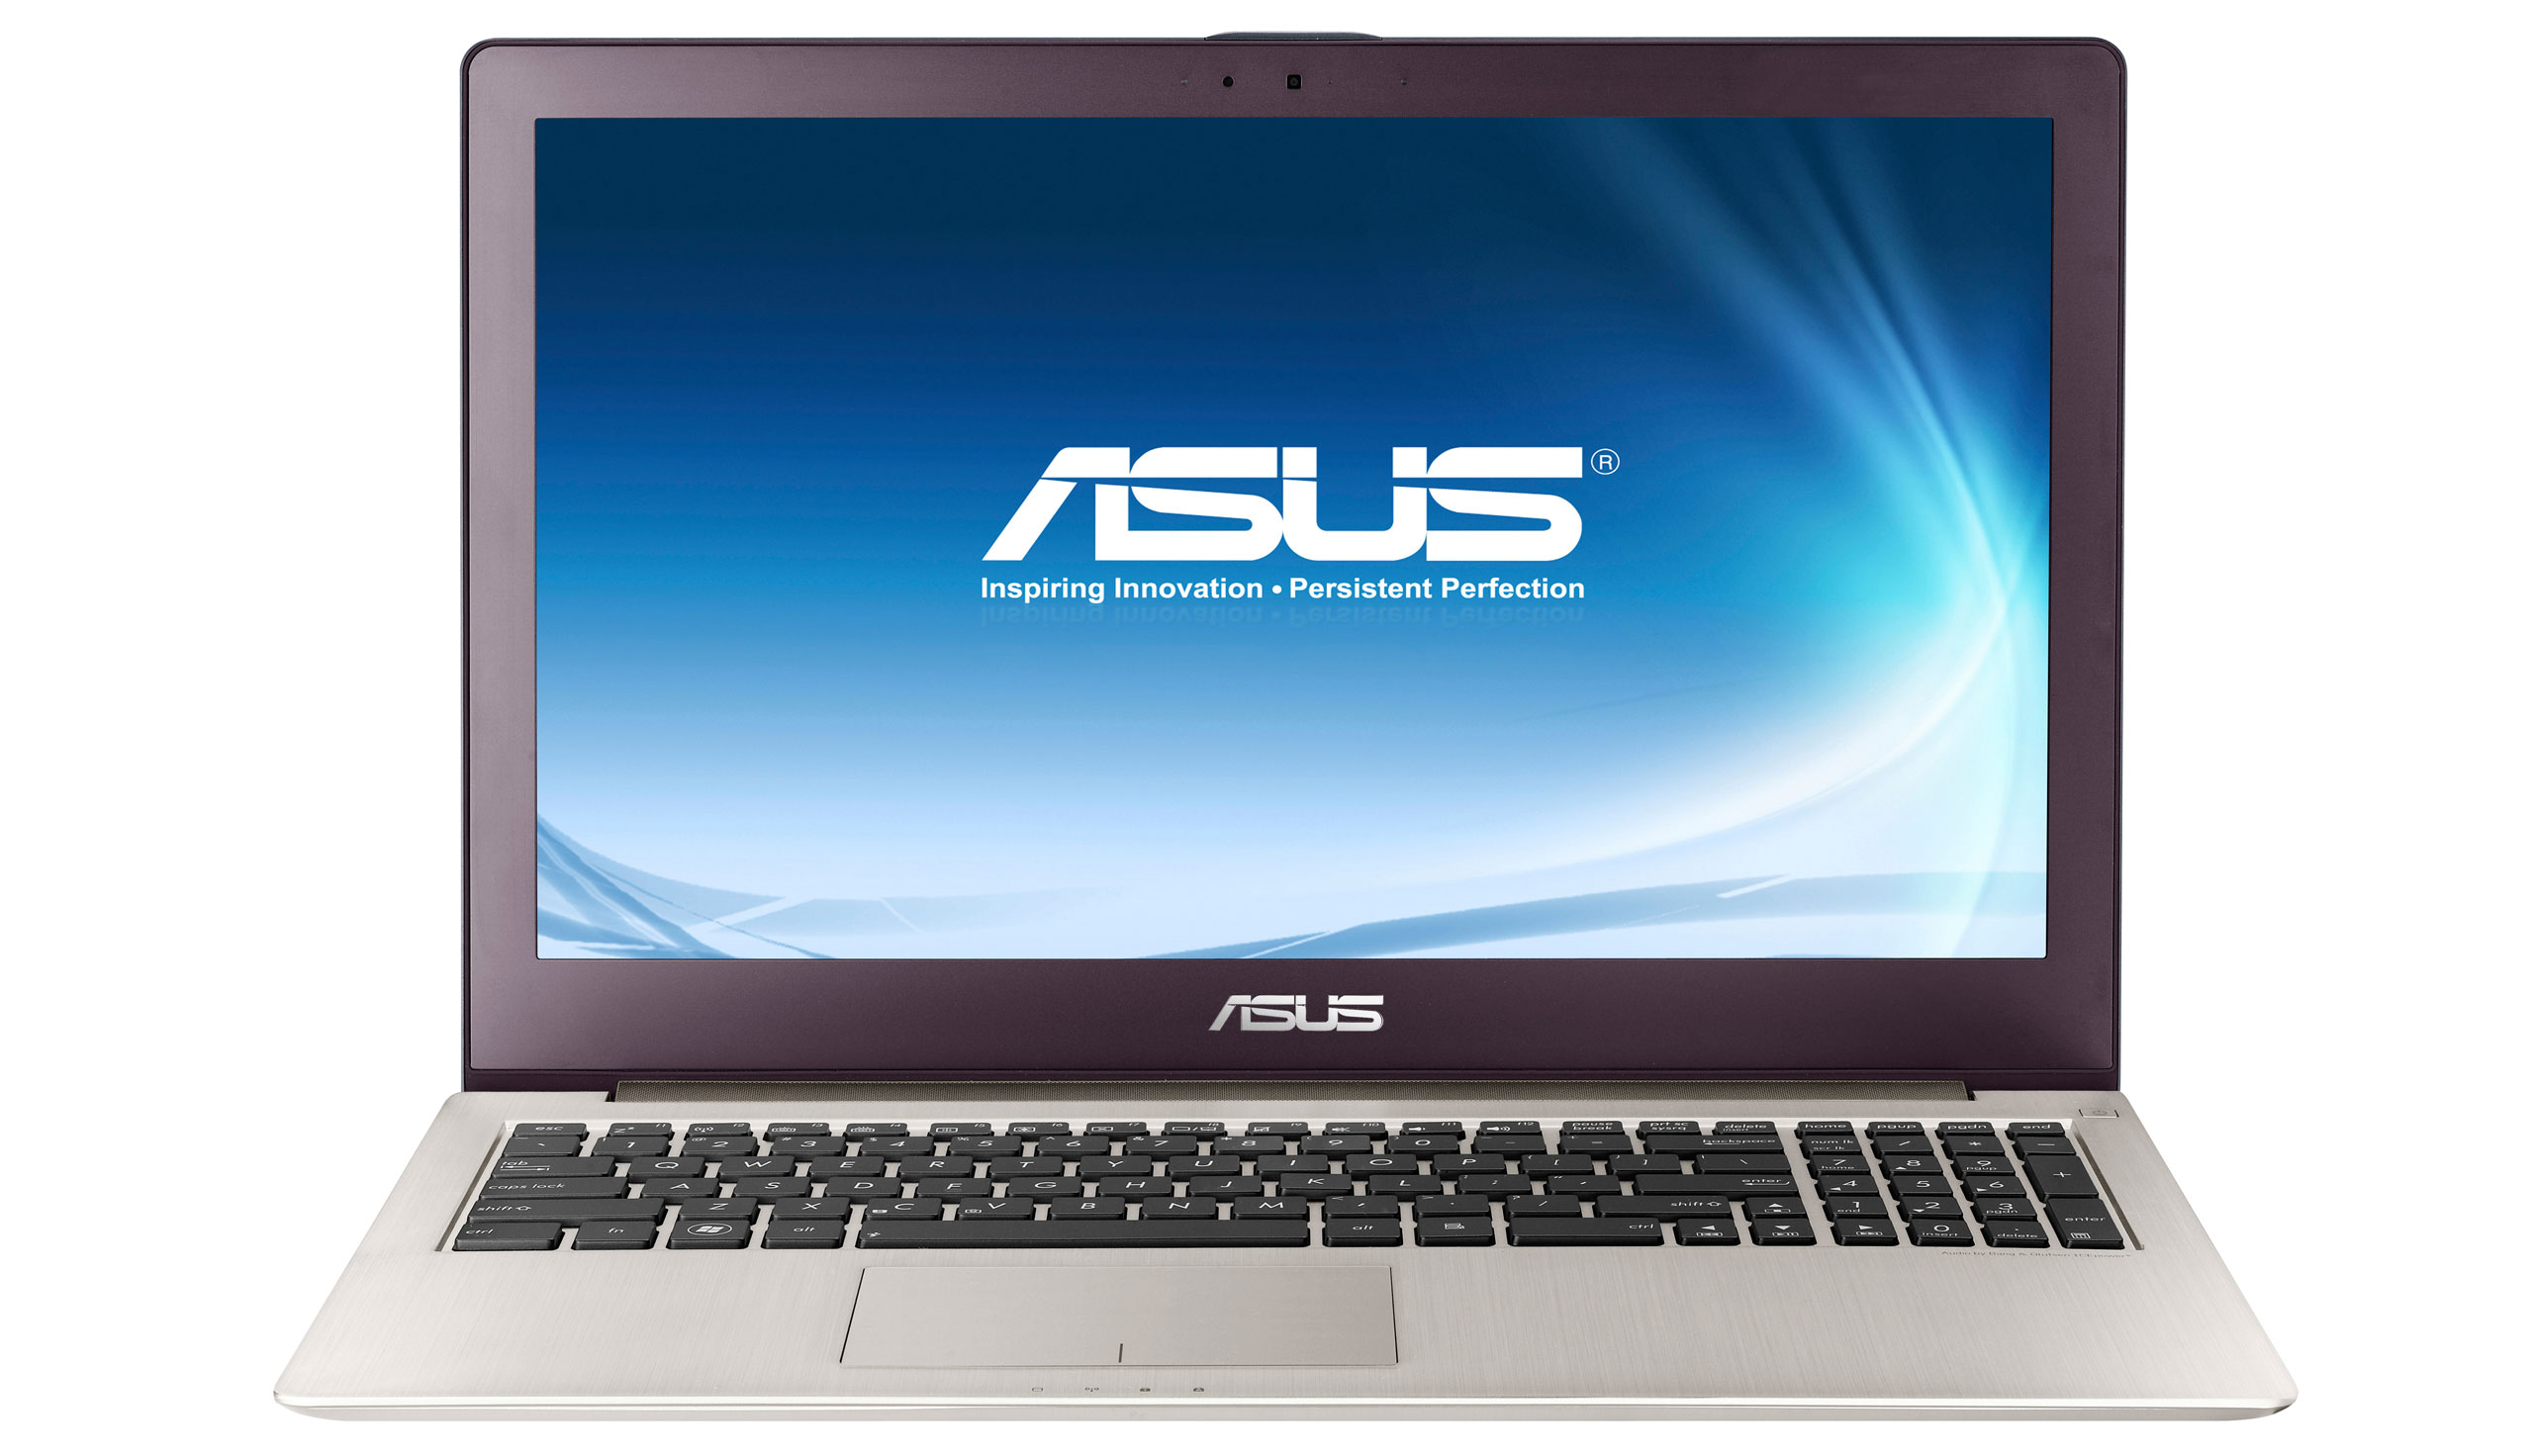 Asus UX51VZA Driver for Windows 8